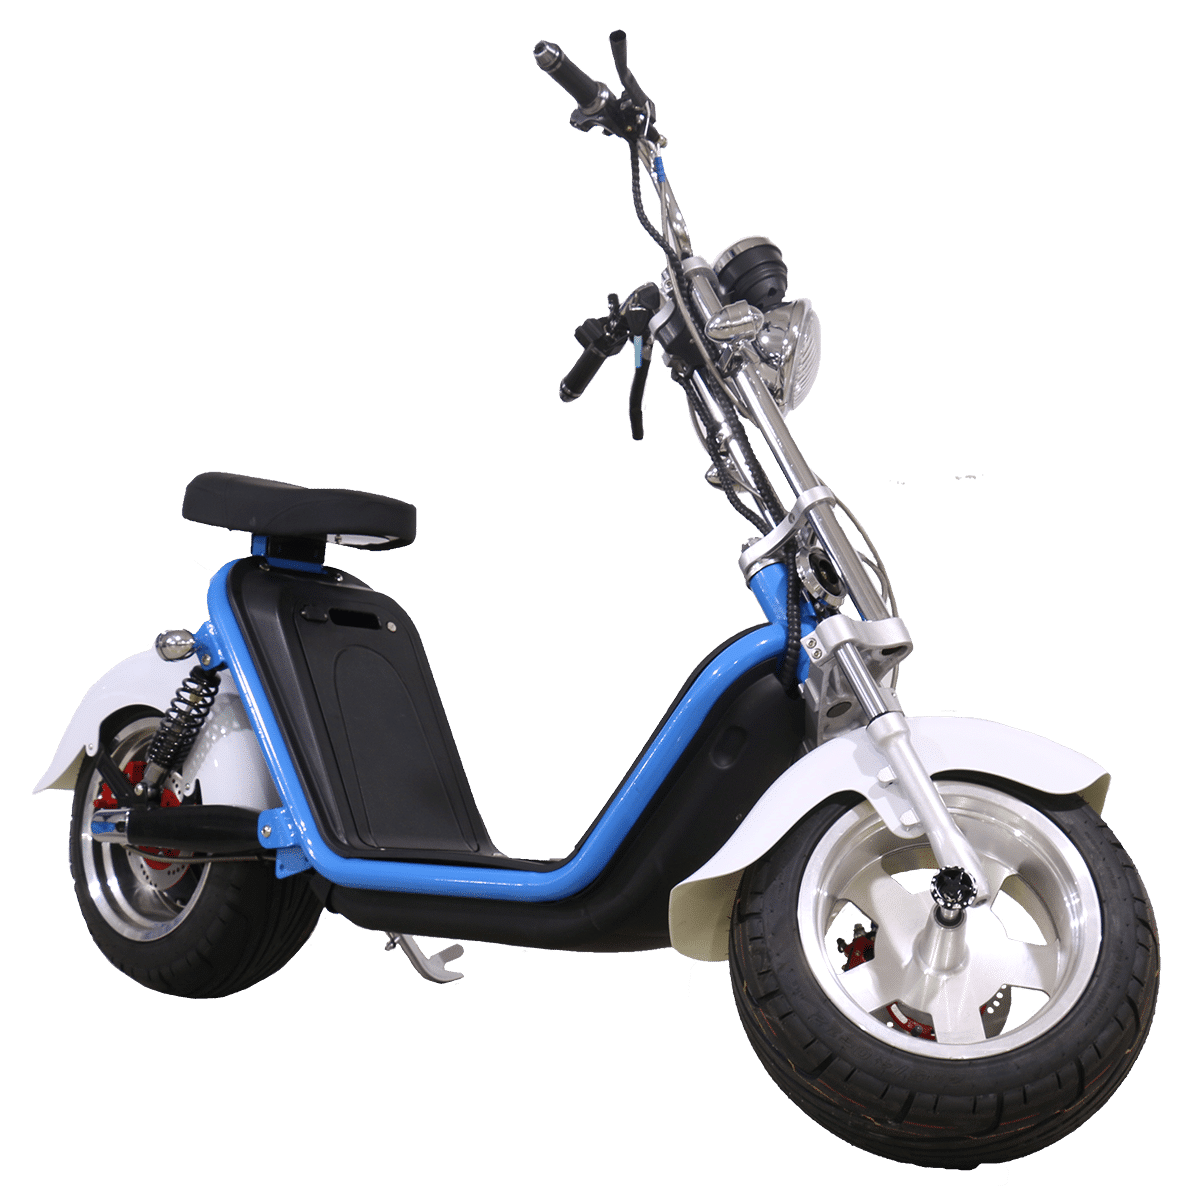 Caigiees 4.0 Bleu version 3000W